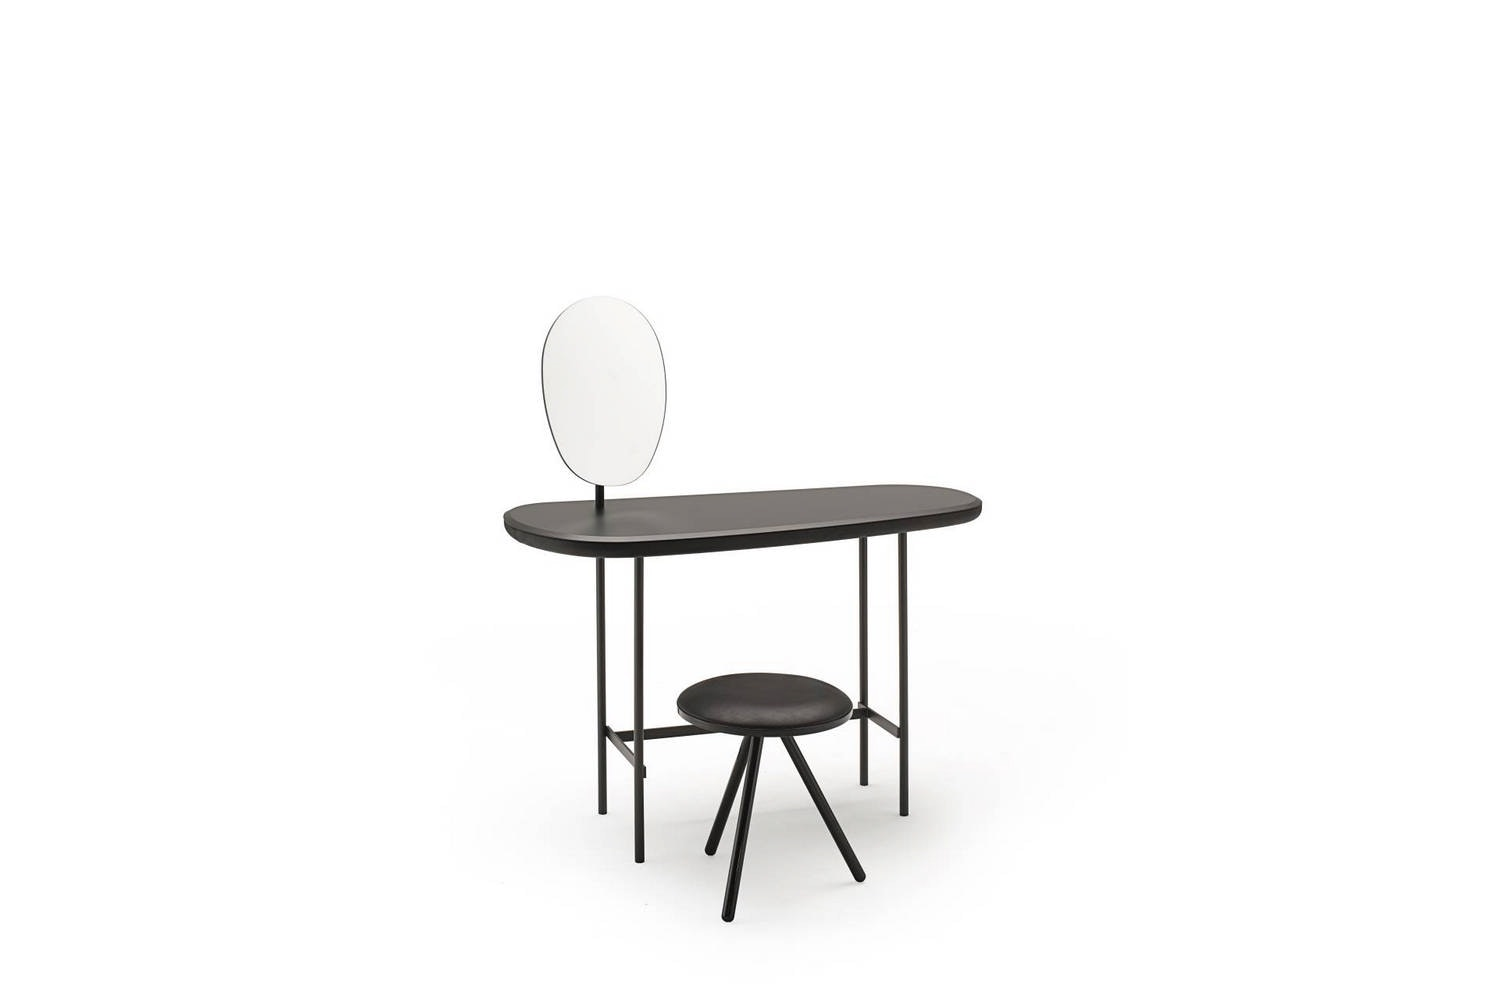 Pebble Vanity by Lanzavecchia + Wai for Living Divani